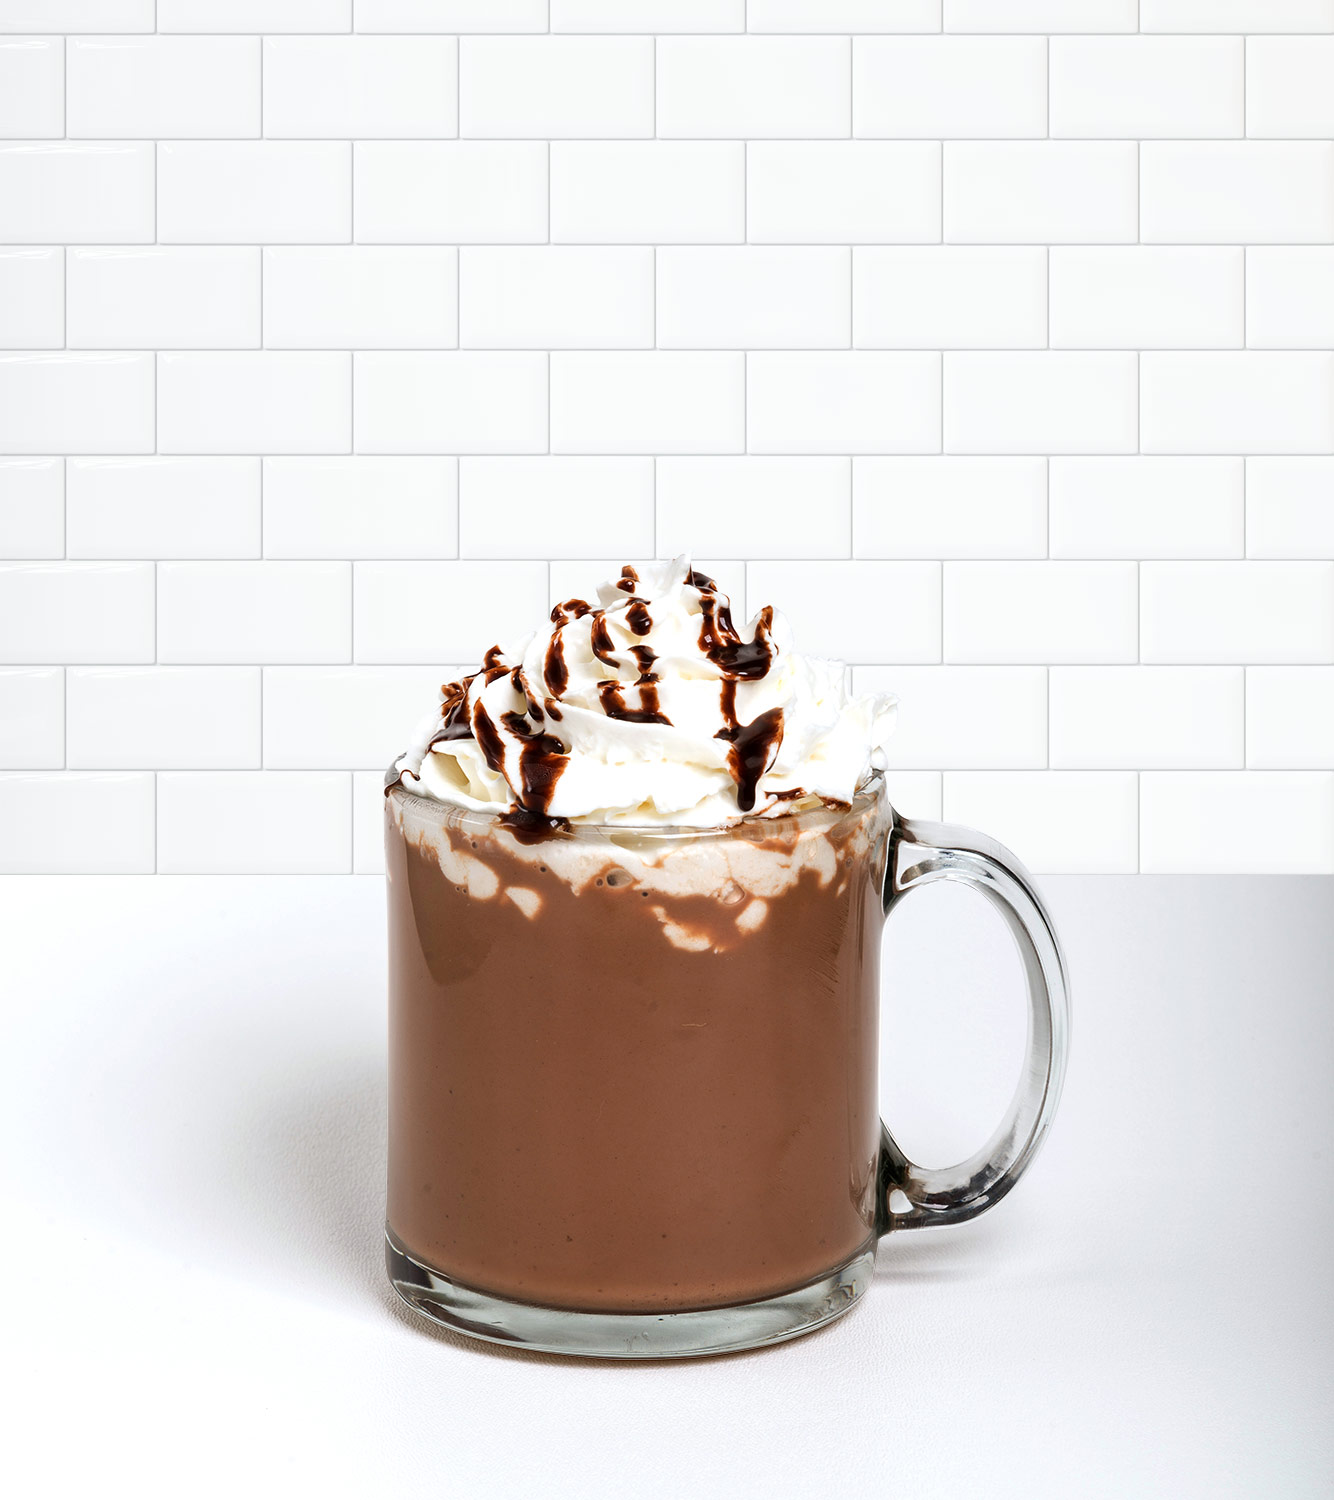 Hot Chocolate in a beverage container